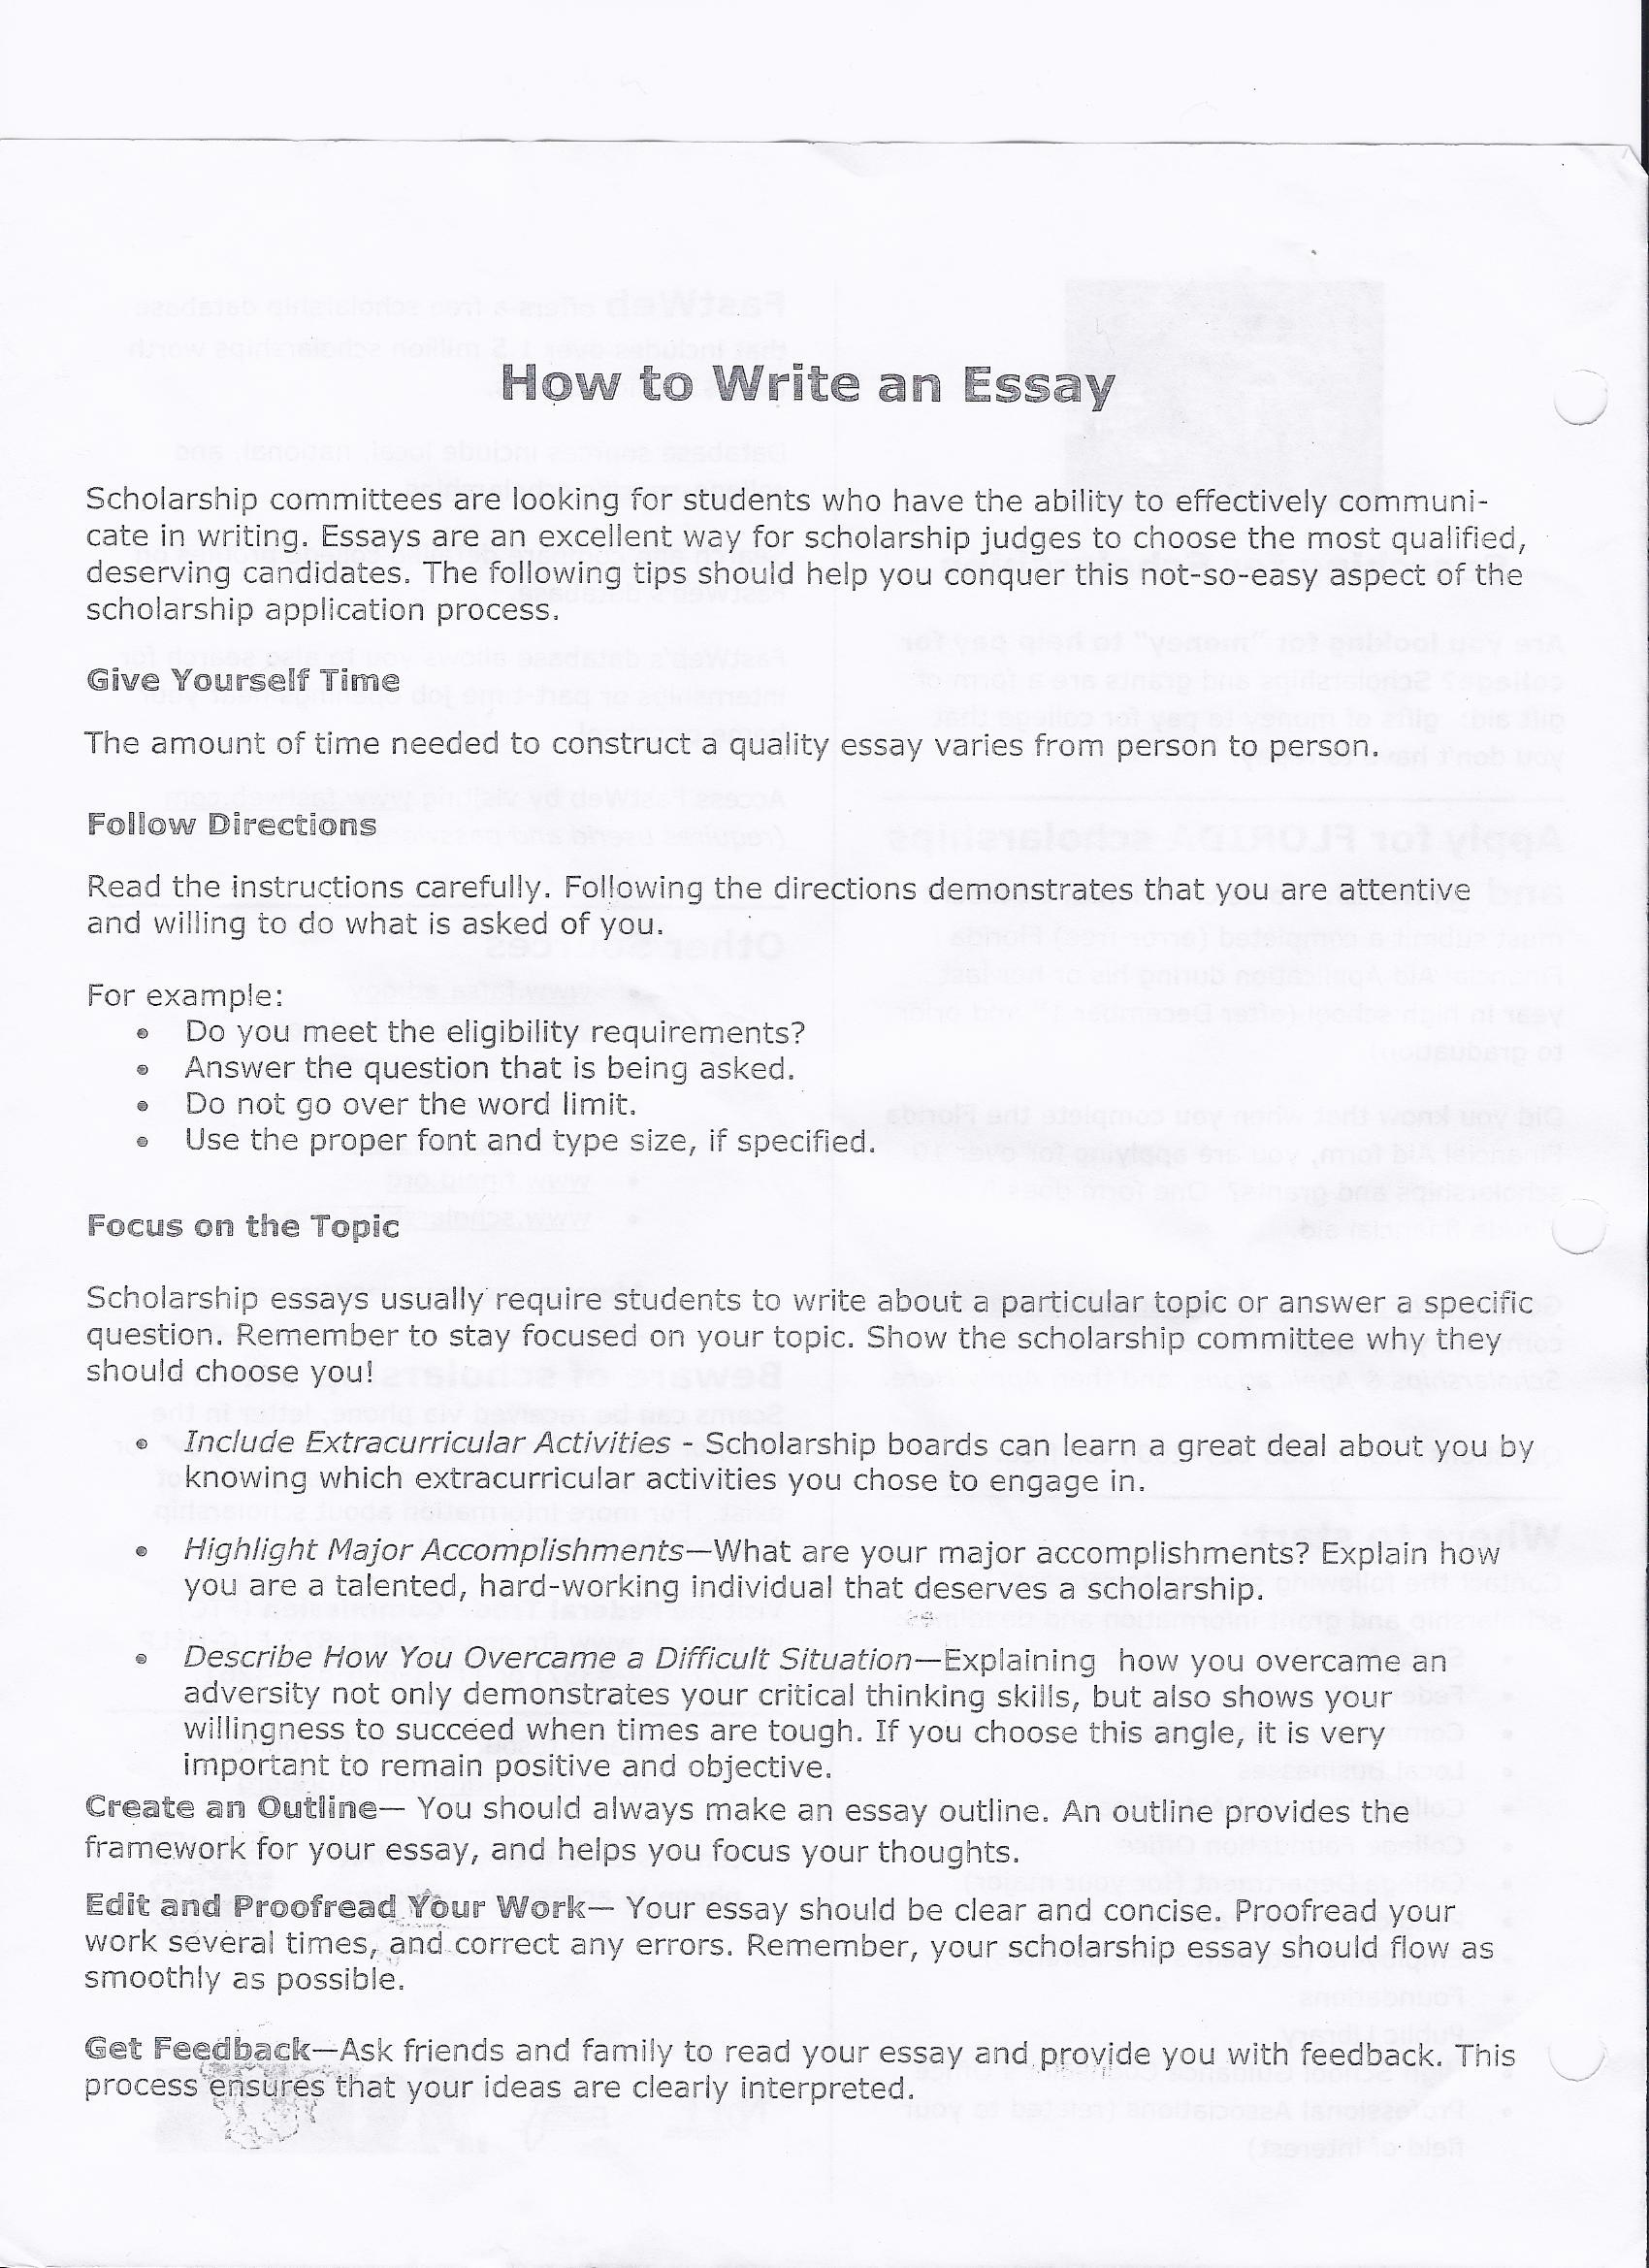 Essay On The Media High School Essay Composing Assist Essaypaycom Encountering Conflict Essays also Essays In German Language High School Essay Composing Assist Essaypaycom      Hamlet As A Tragic Hero Essay